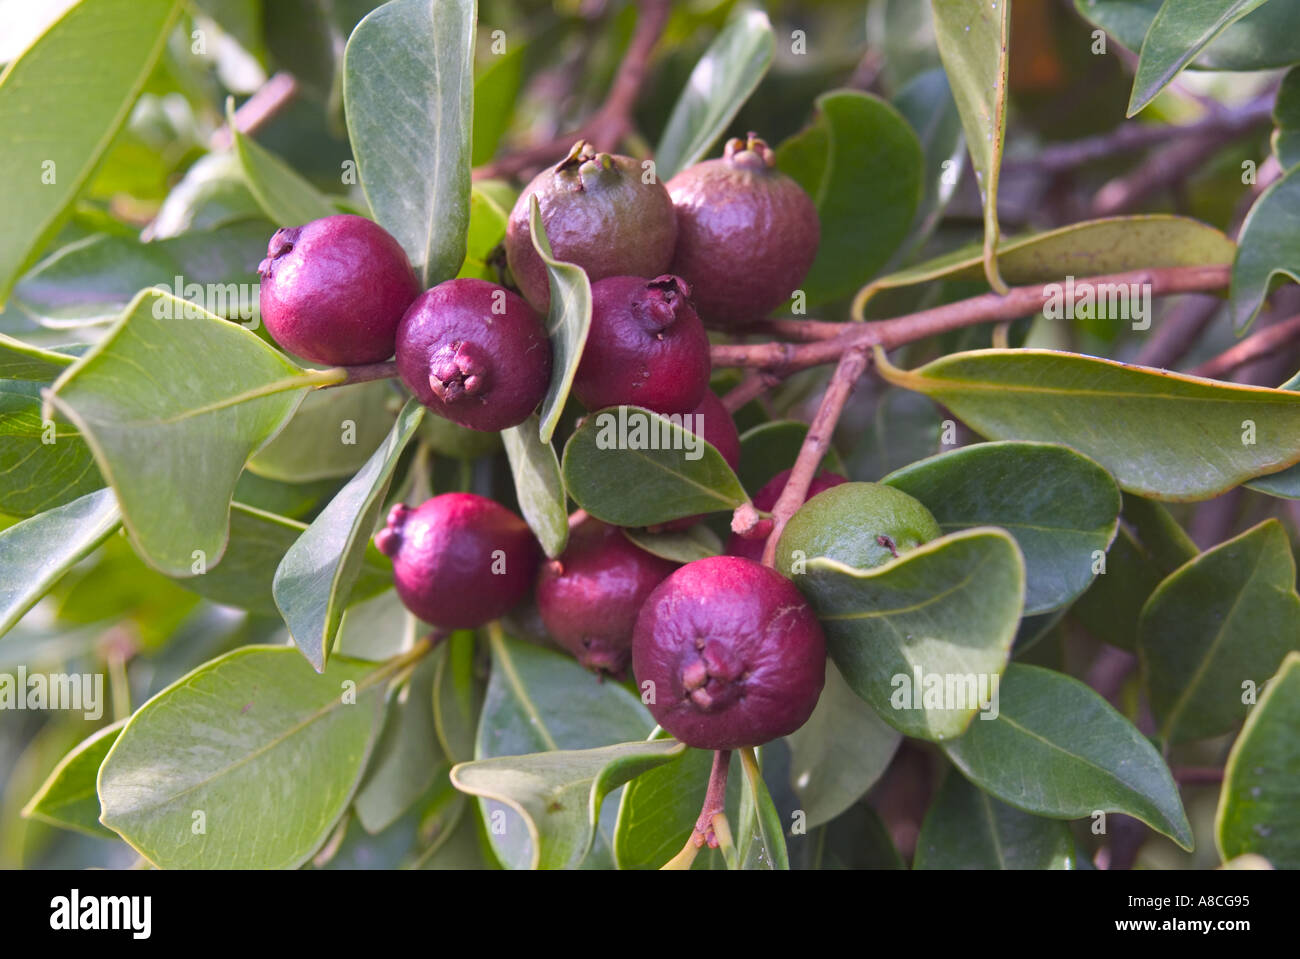 Strawberry Guava Psidium Littorale Stock Image Strawberry Guava Stock  Photos & Strawberry Guava Stock Images Alamy